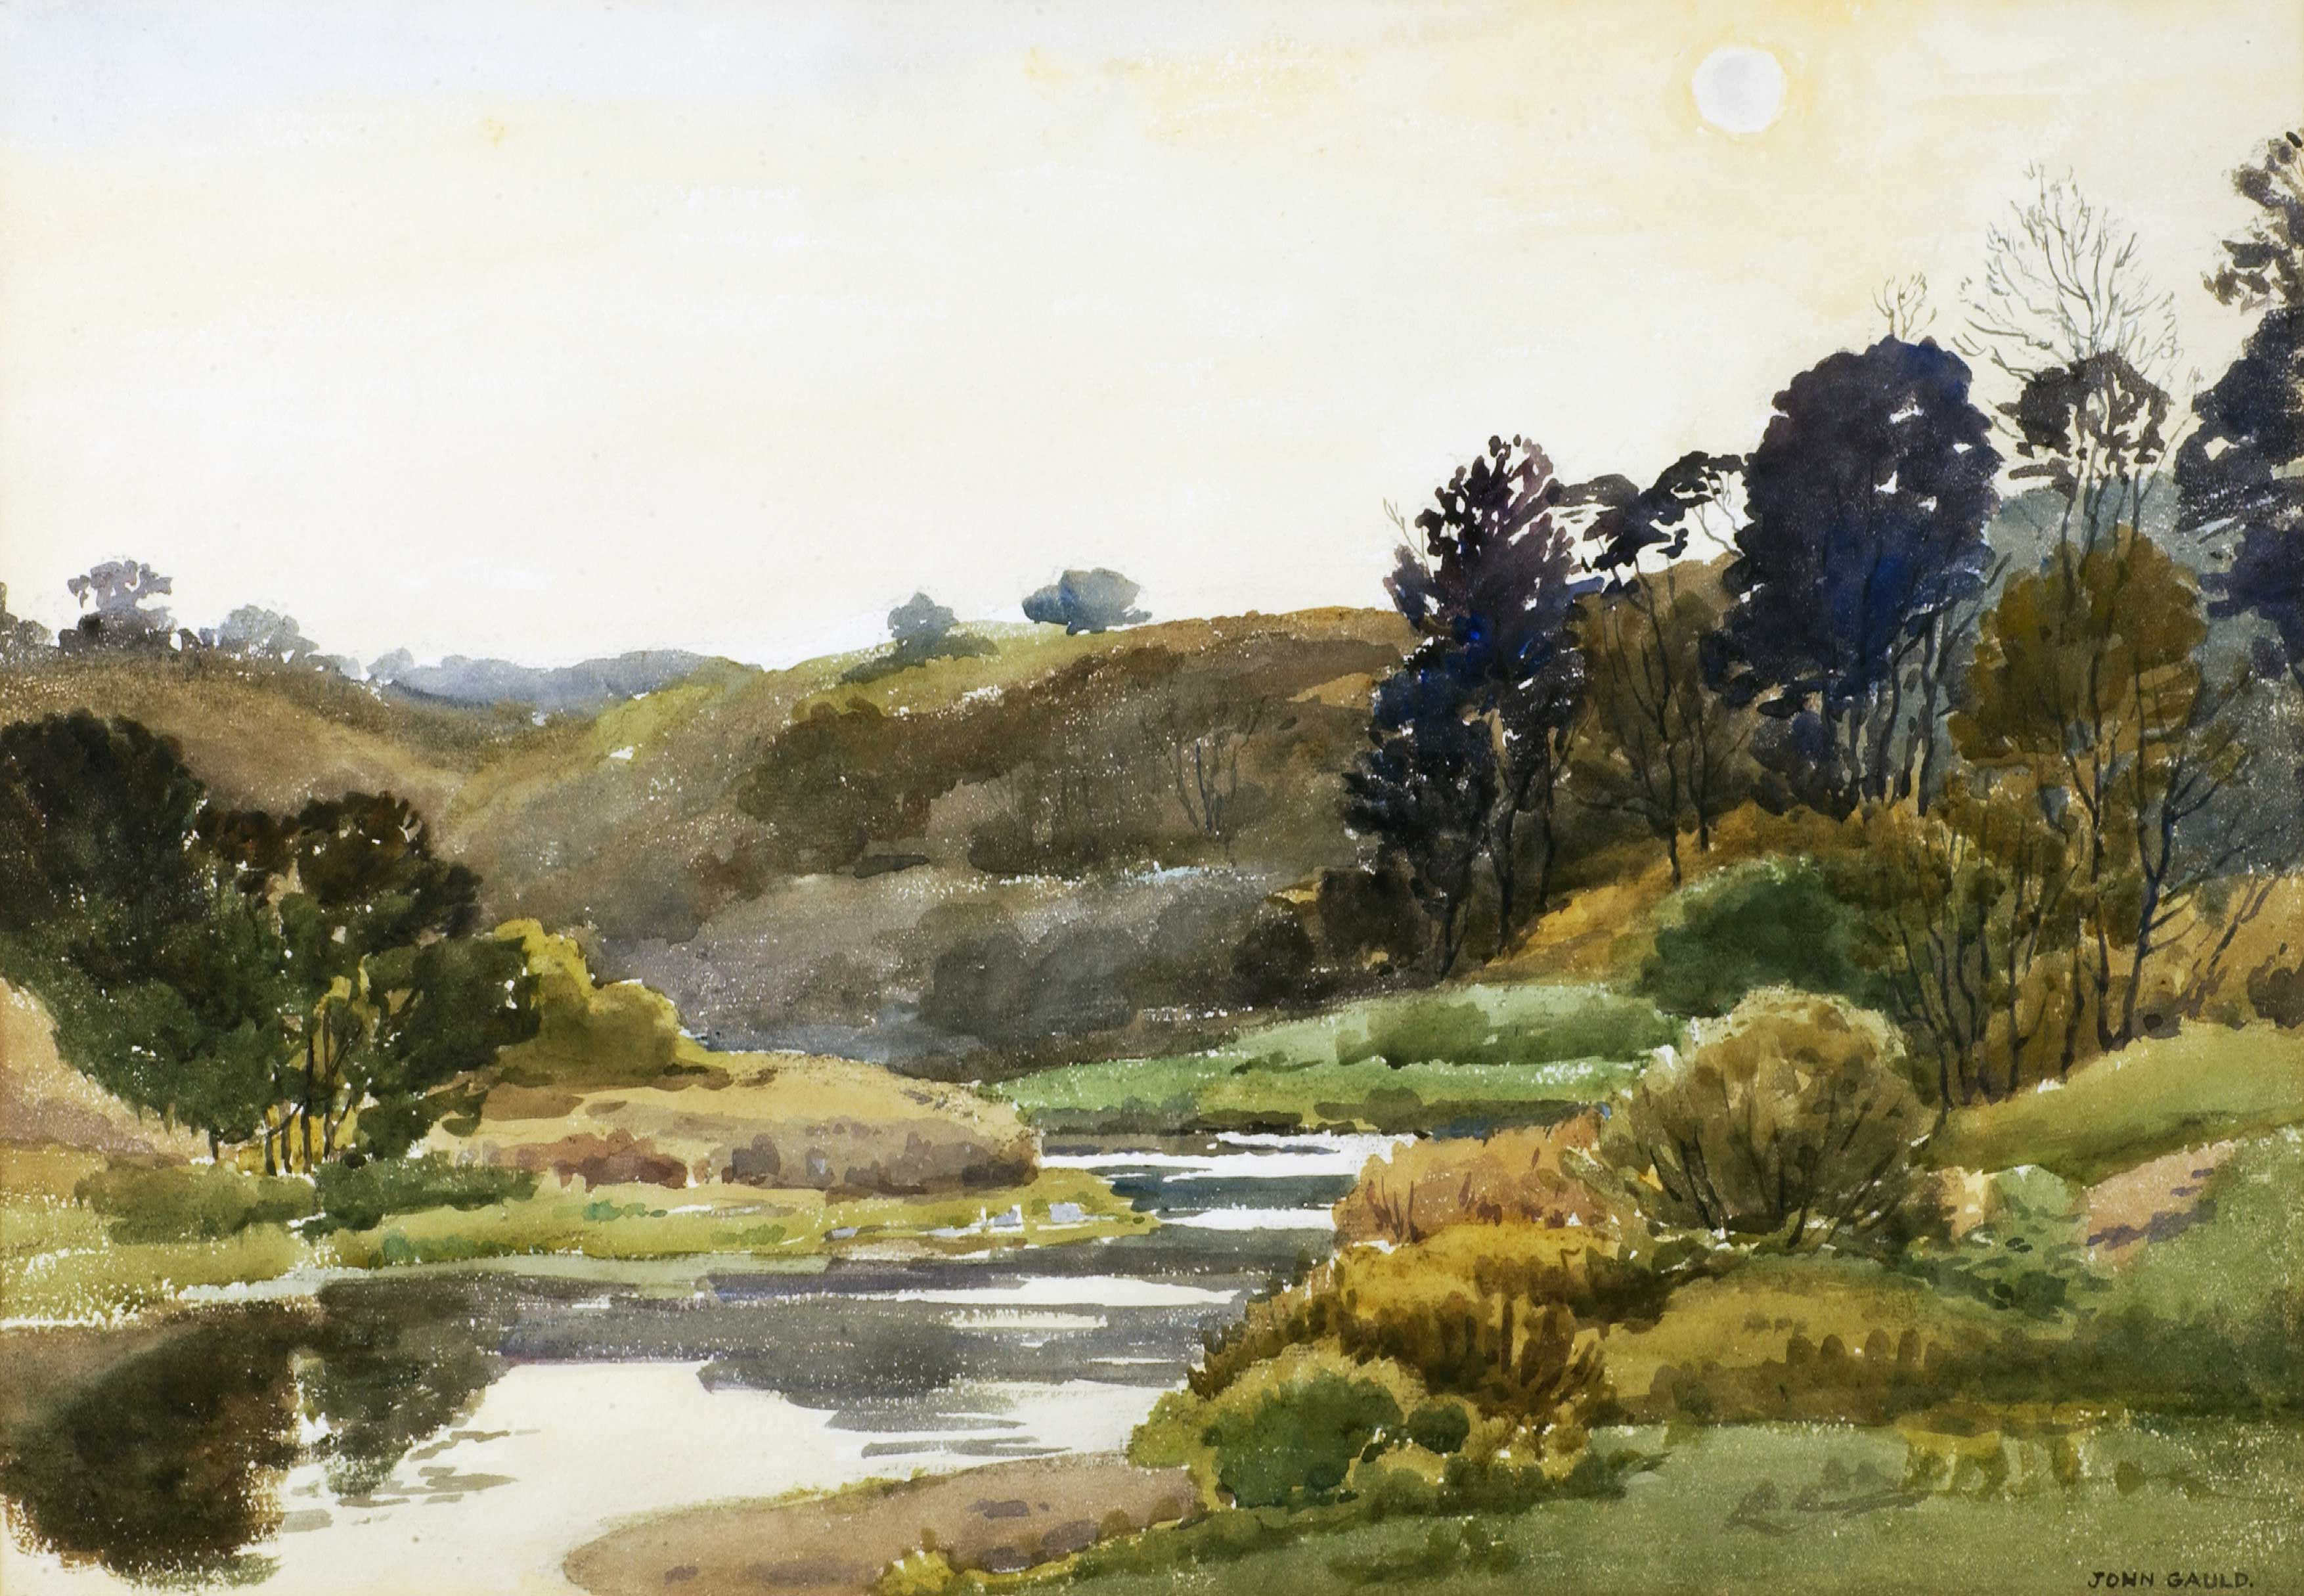 The River Croal at Darcy Lever